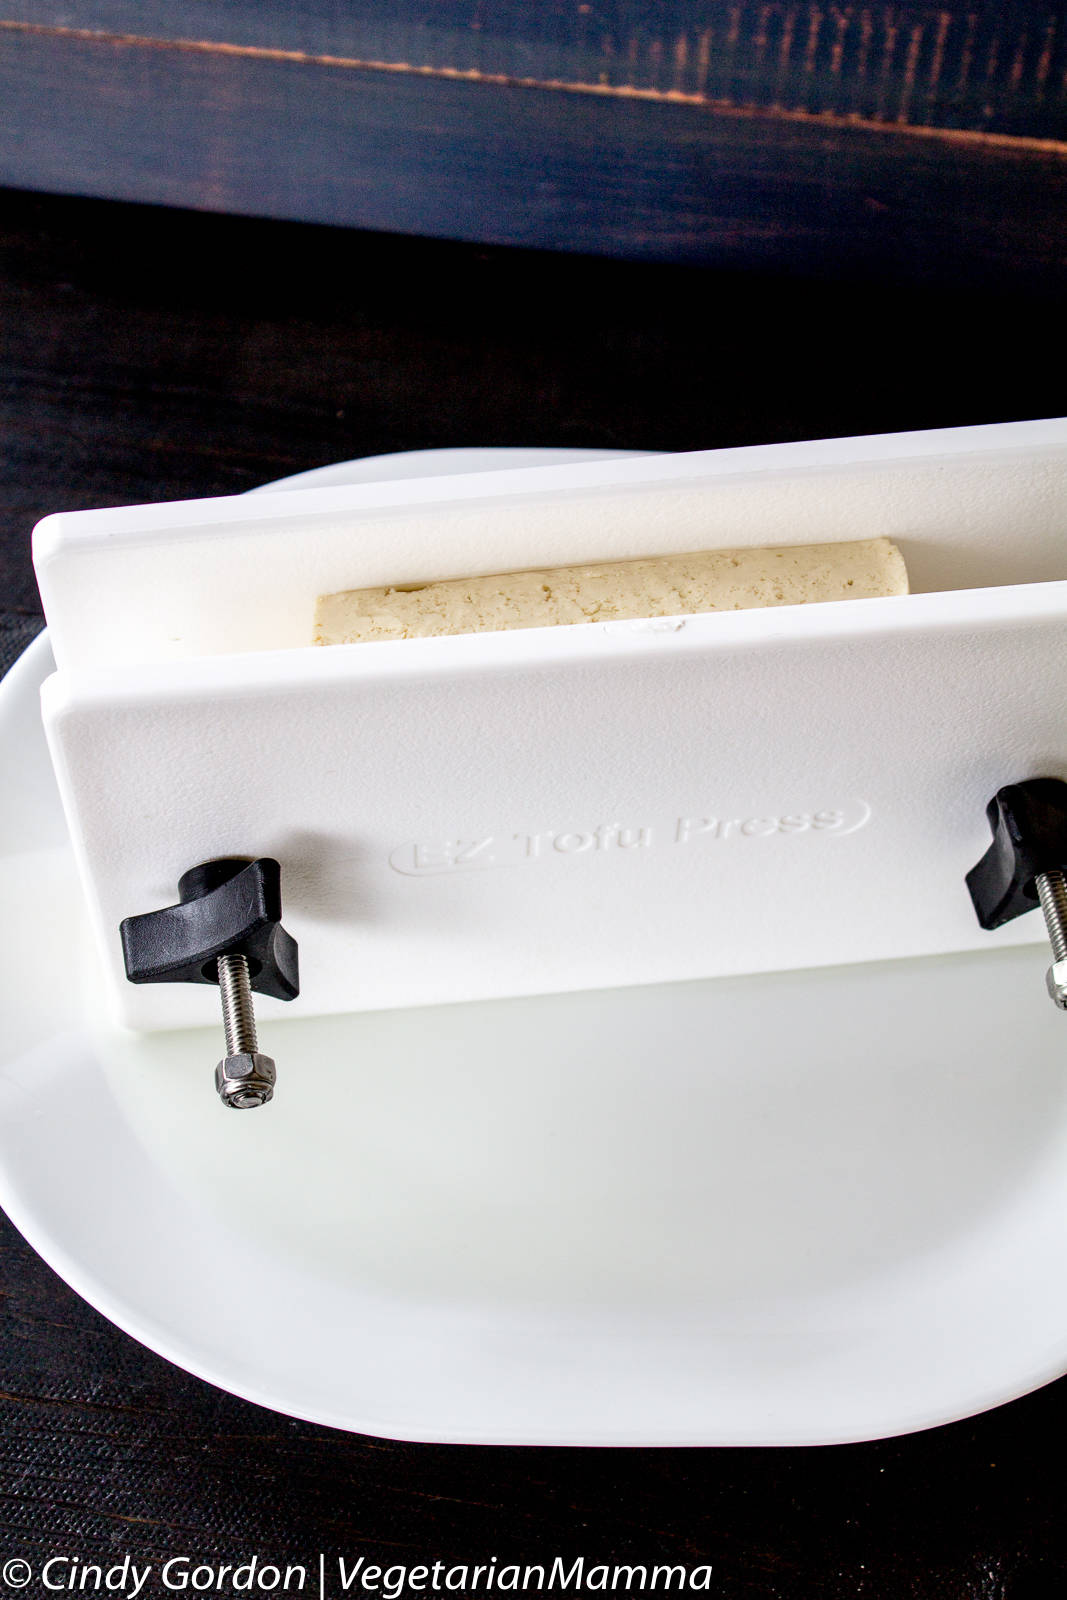 A white tofu press with a block of off white colored tofu inside